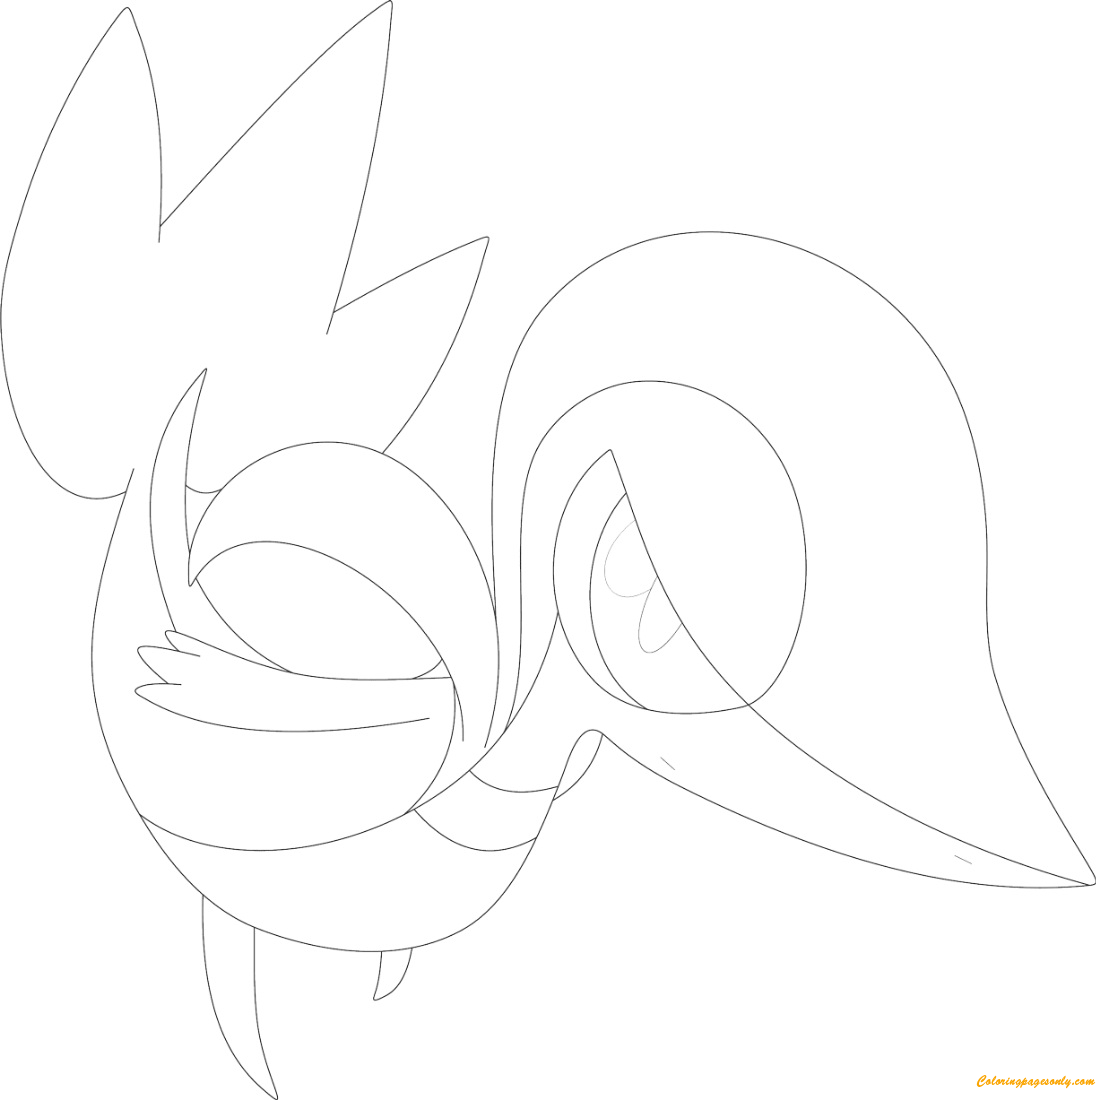 Snivy Pokemon Coloring Page Free Coloring Pages Online Snivy Coloring Pages